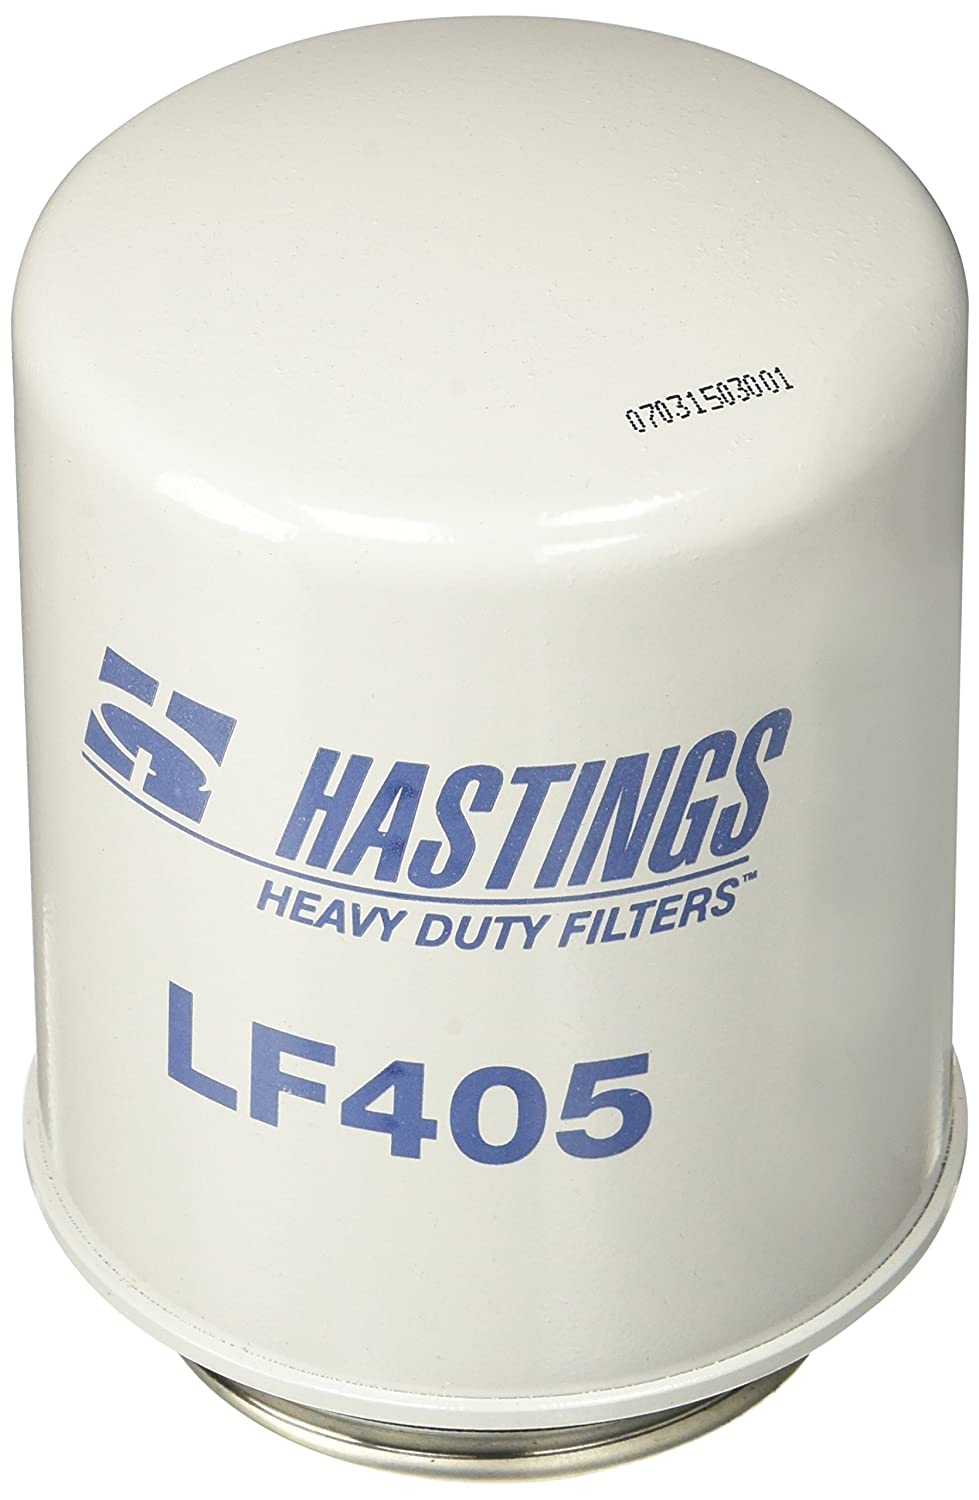 Hastings Lf405 Vac Cel By Pass Lube Oil Spin On Filter Fuel Filters With Mason Jar Screw Neck Automotive